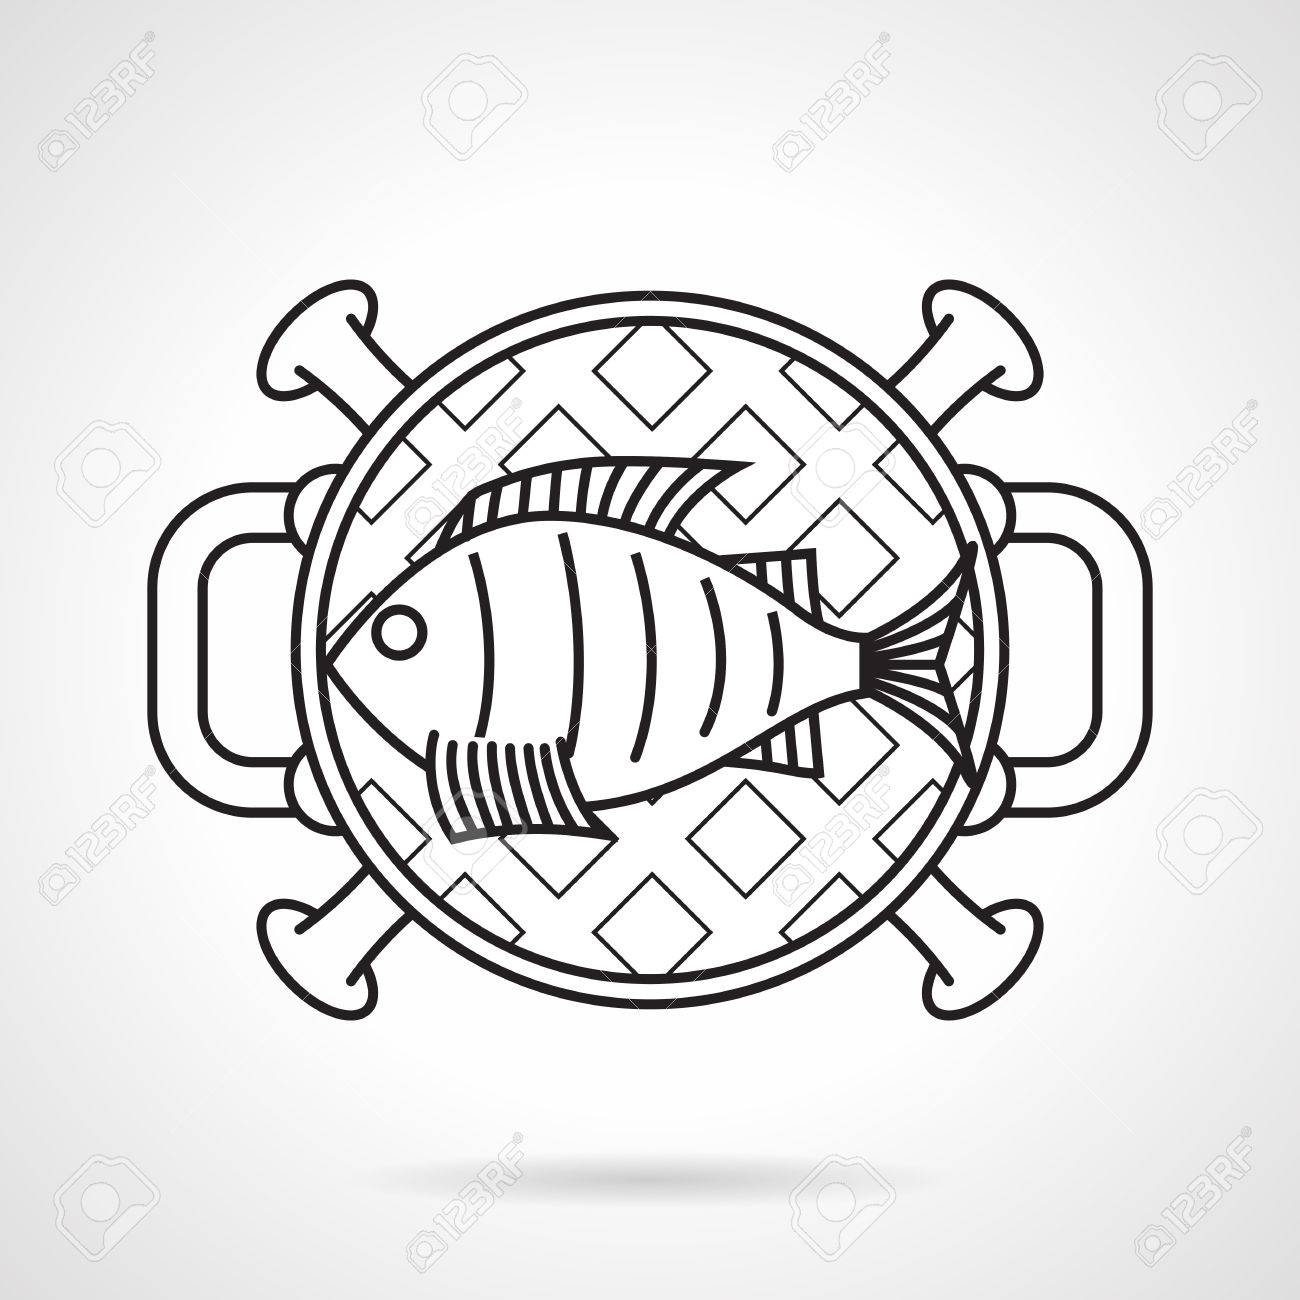 black flat line vector icon for fish on barbecue grill a top